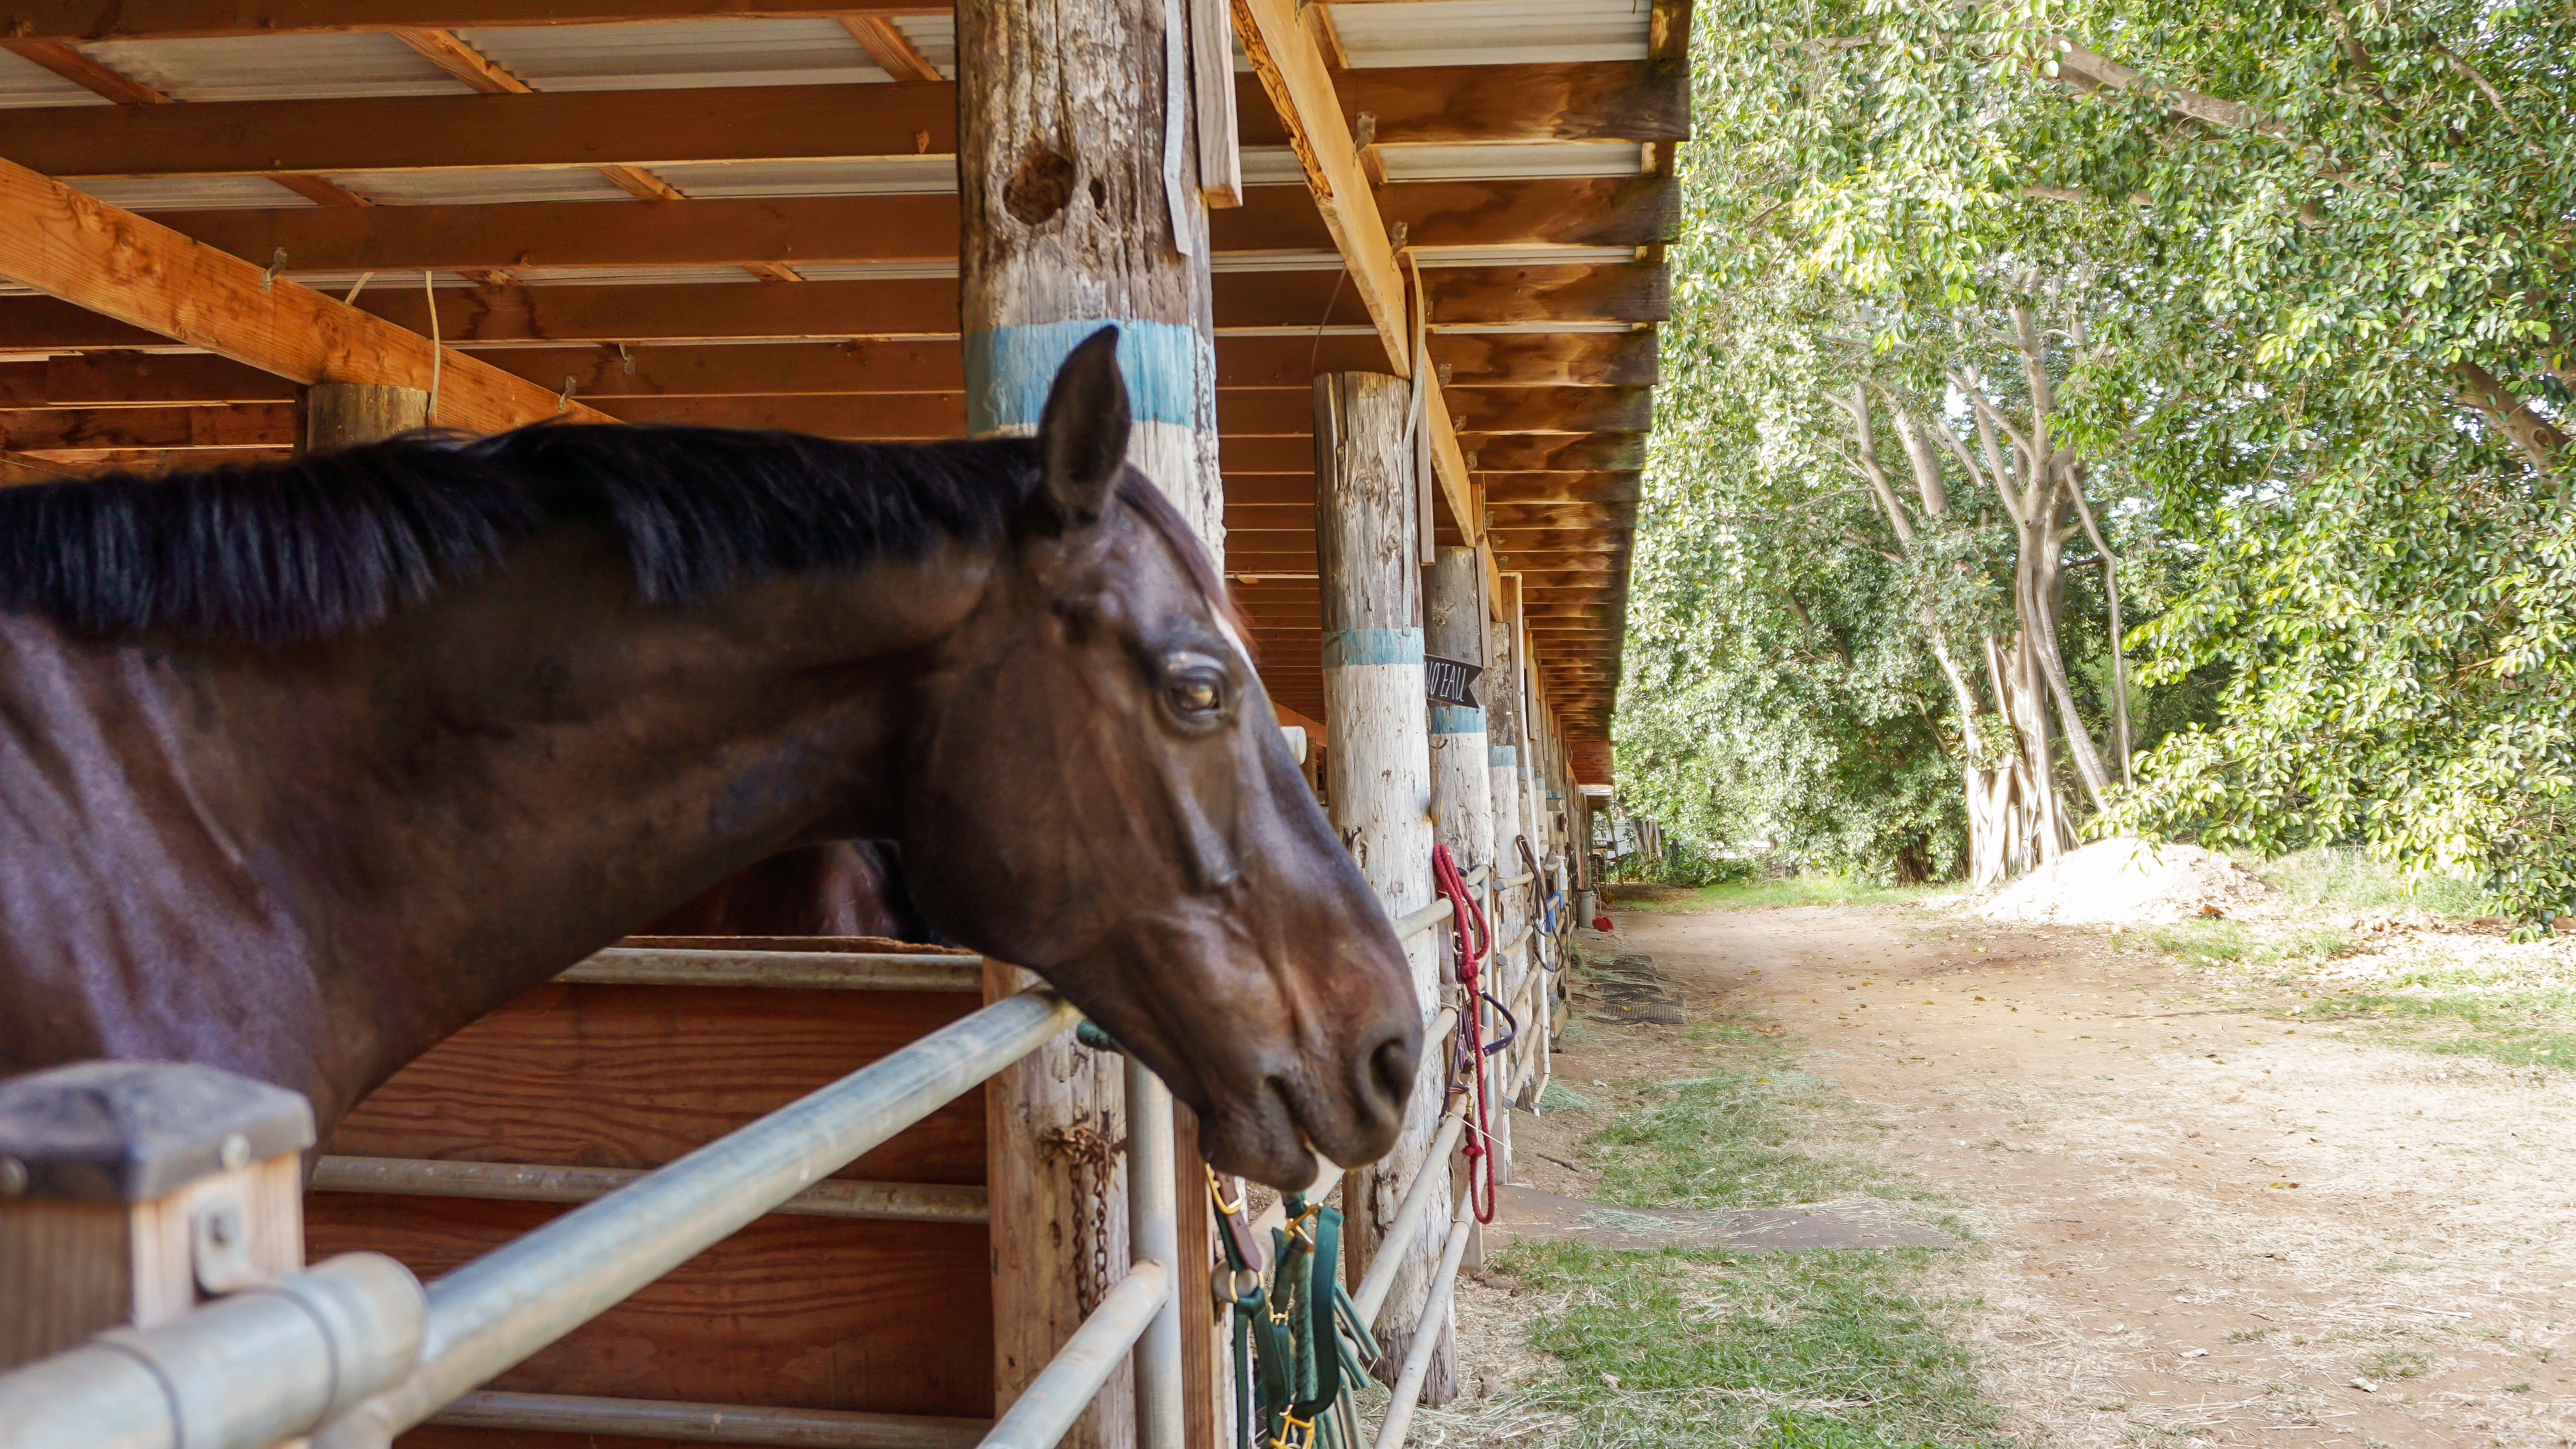 A 'Vicious' Battle Over The Future Of Koko Crater Stables